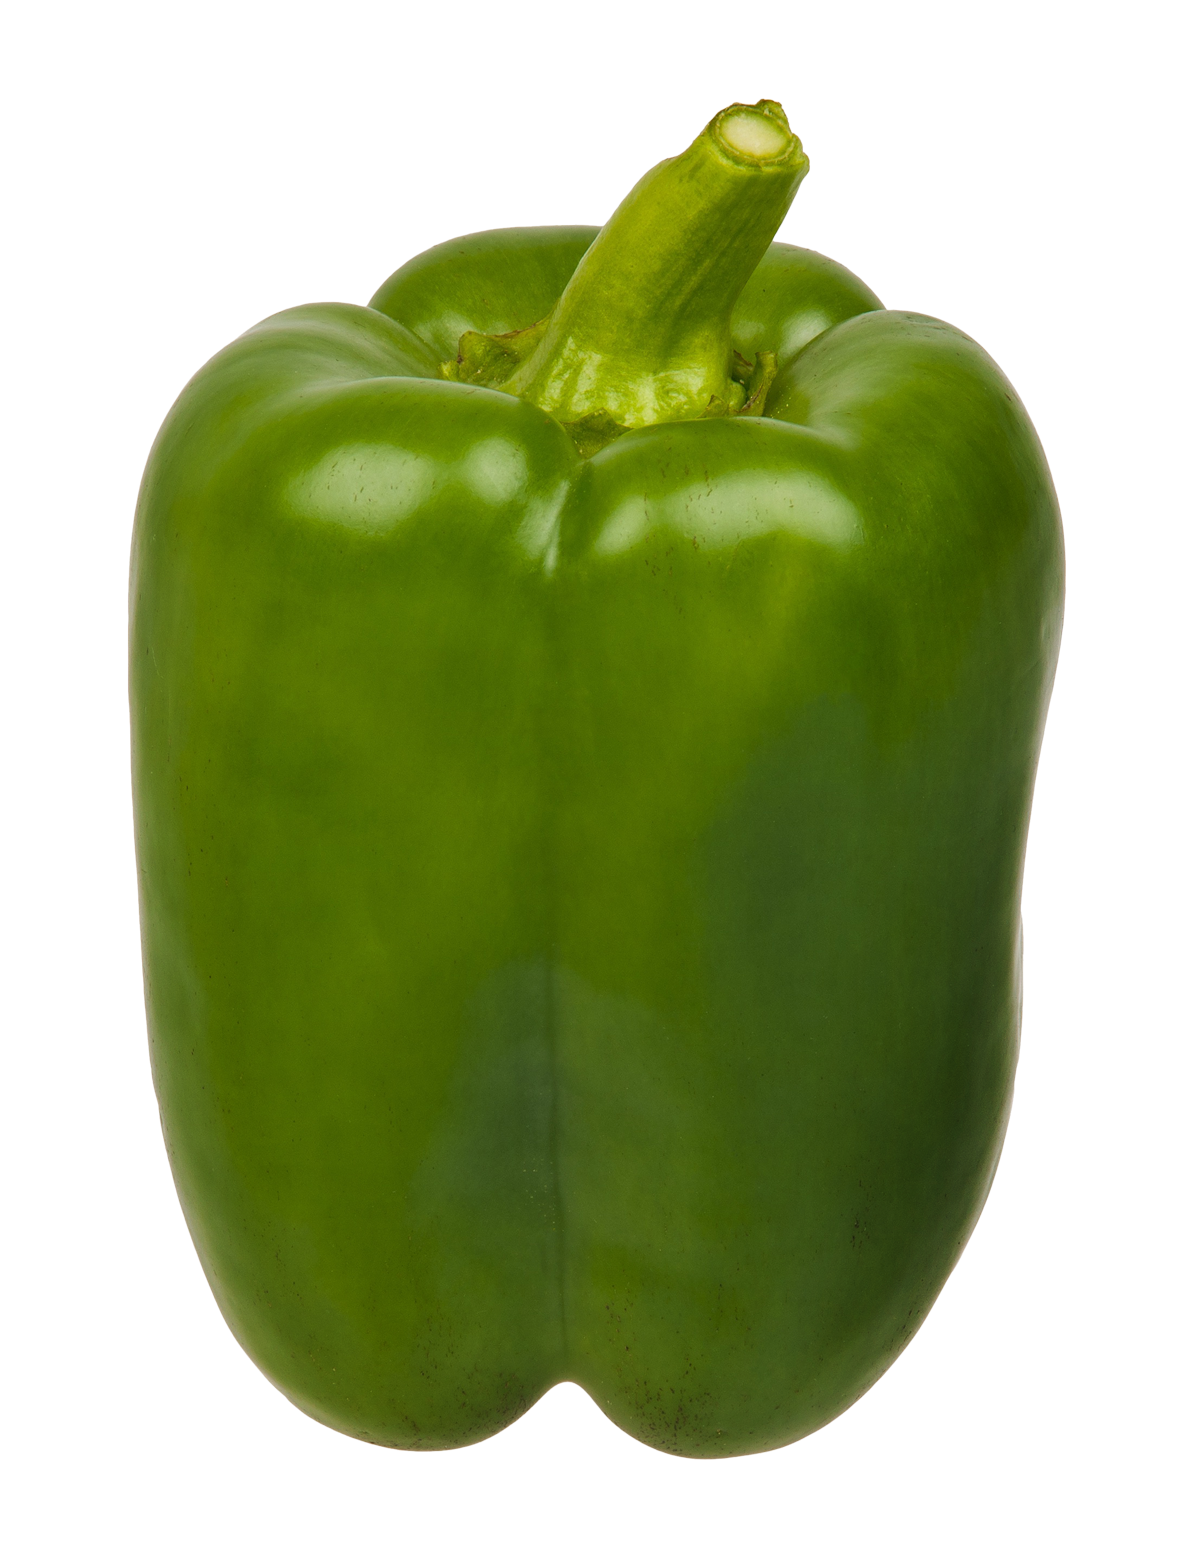 Vegetables clipart bell pepper. Green png image purepng